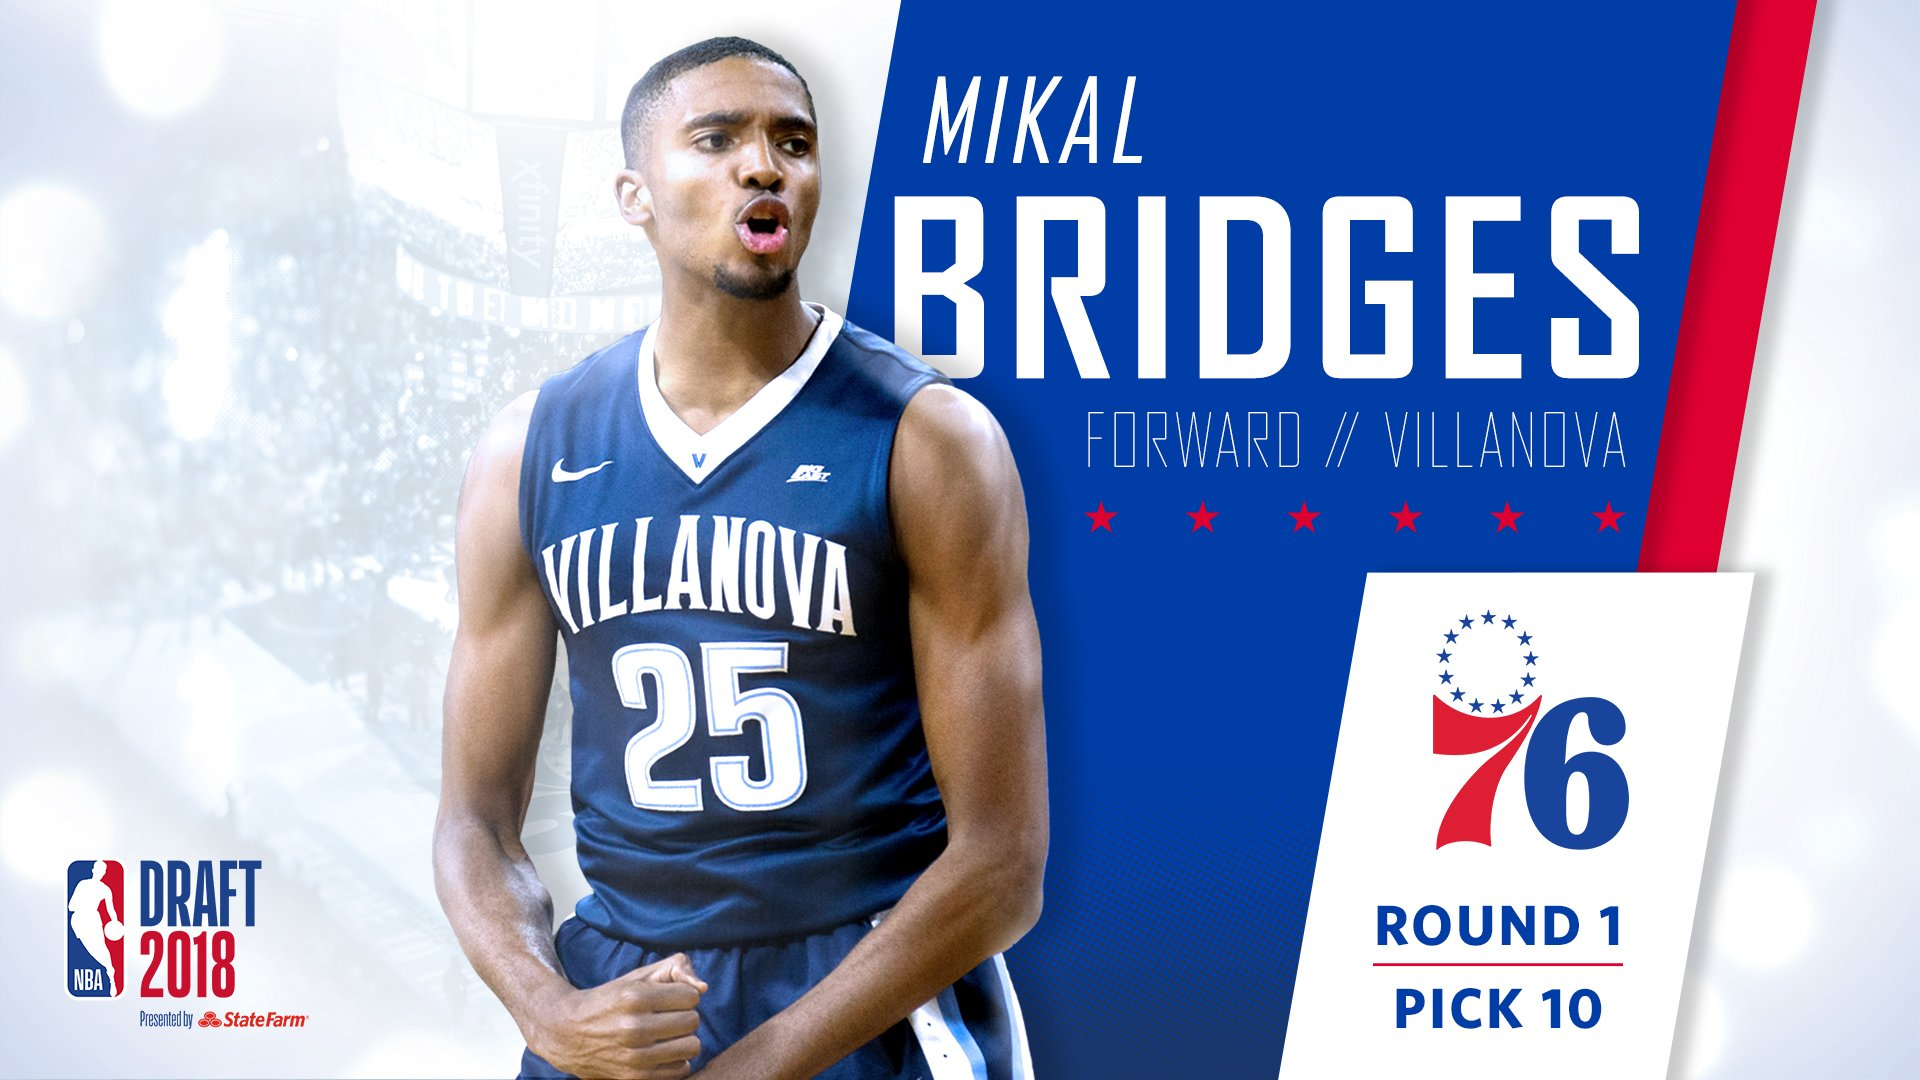 Welcome home, @mikal_bridges!  #HereTheyCome x #NBADraft https://t.co/cyiePDtcLs